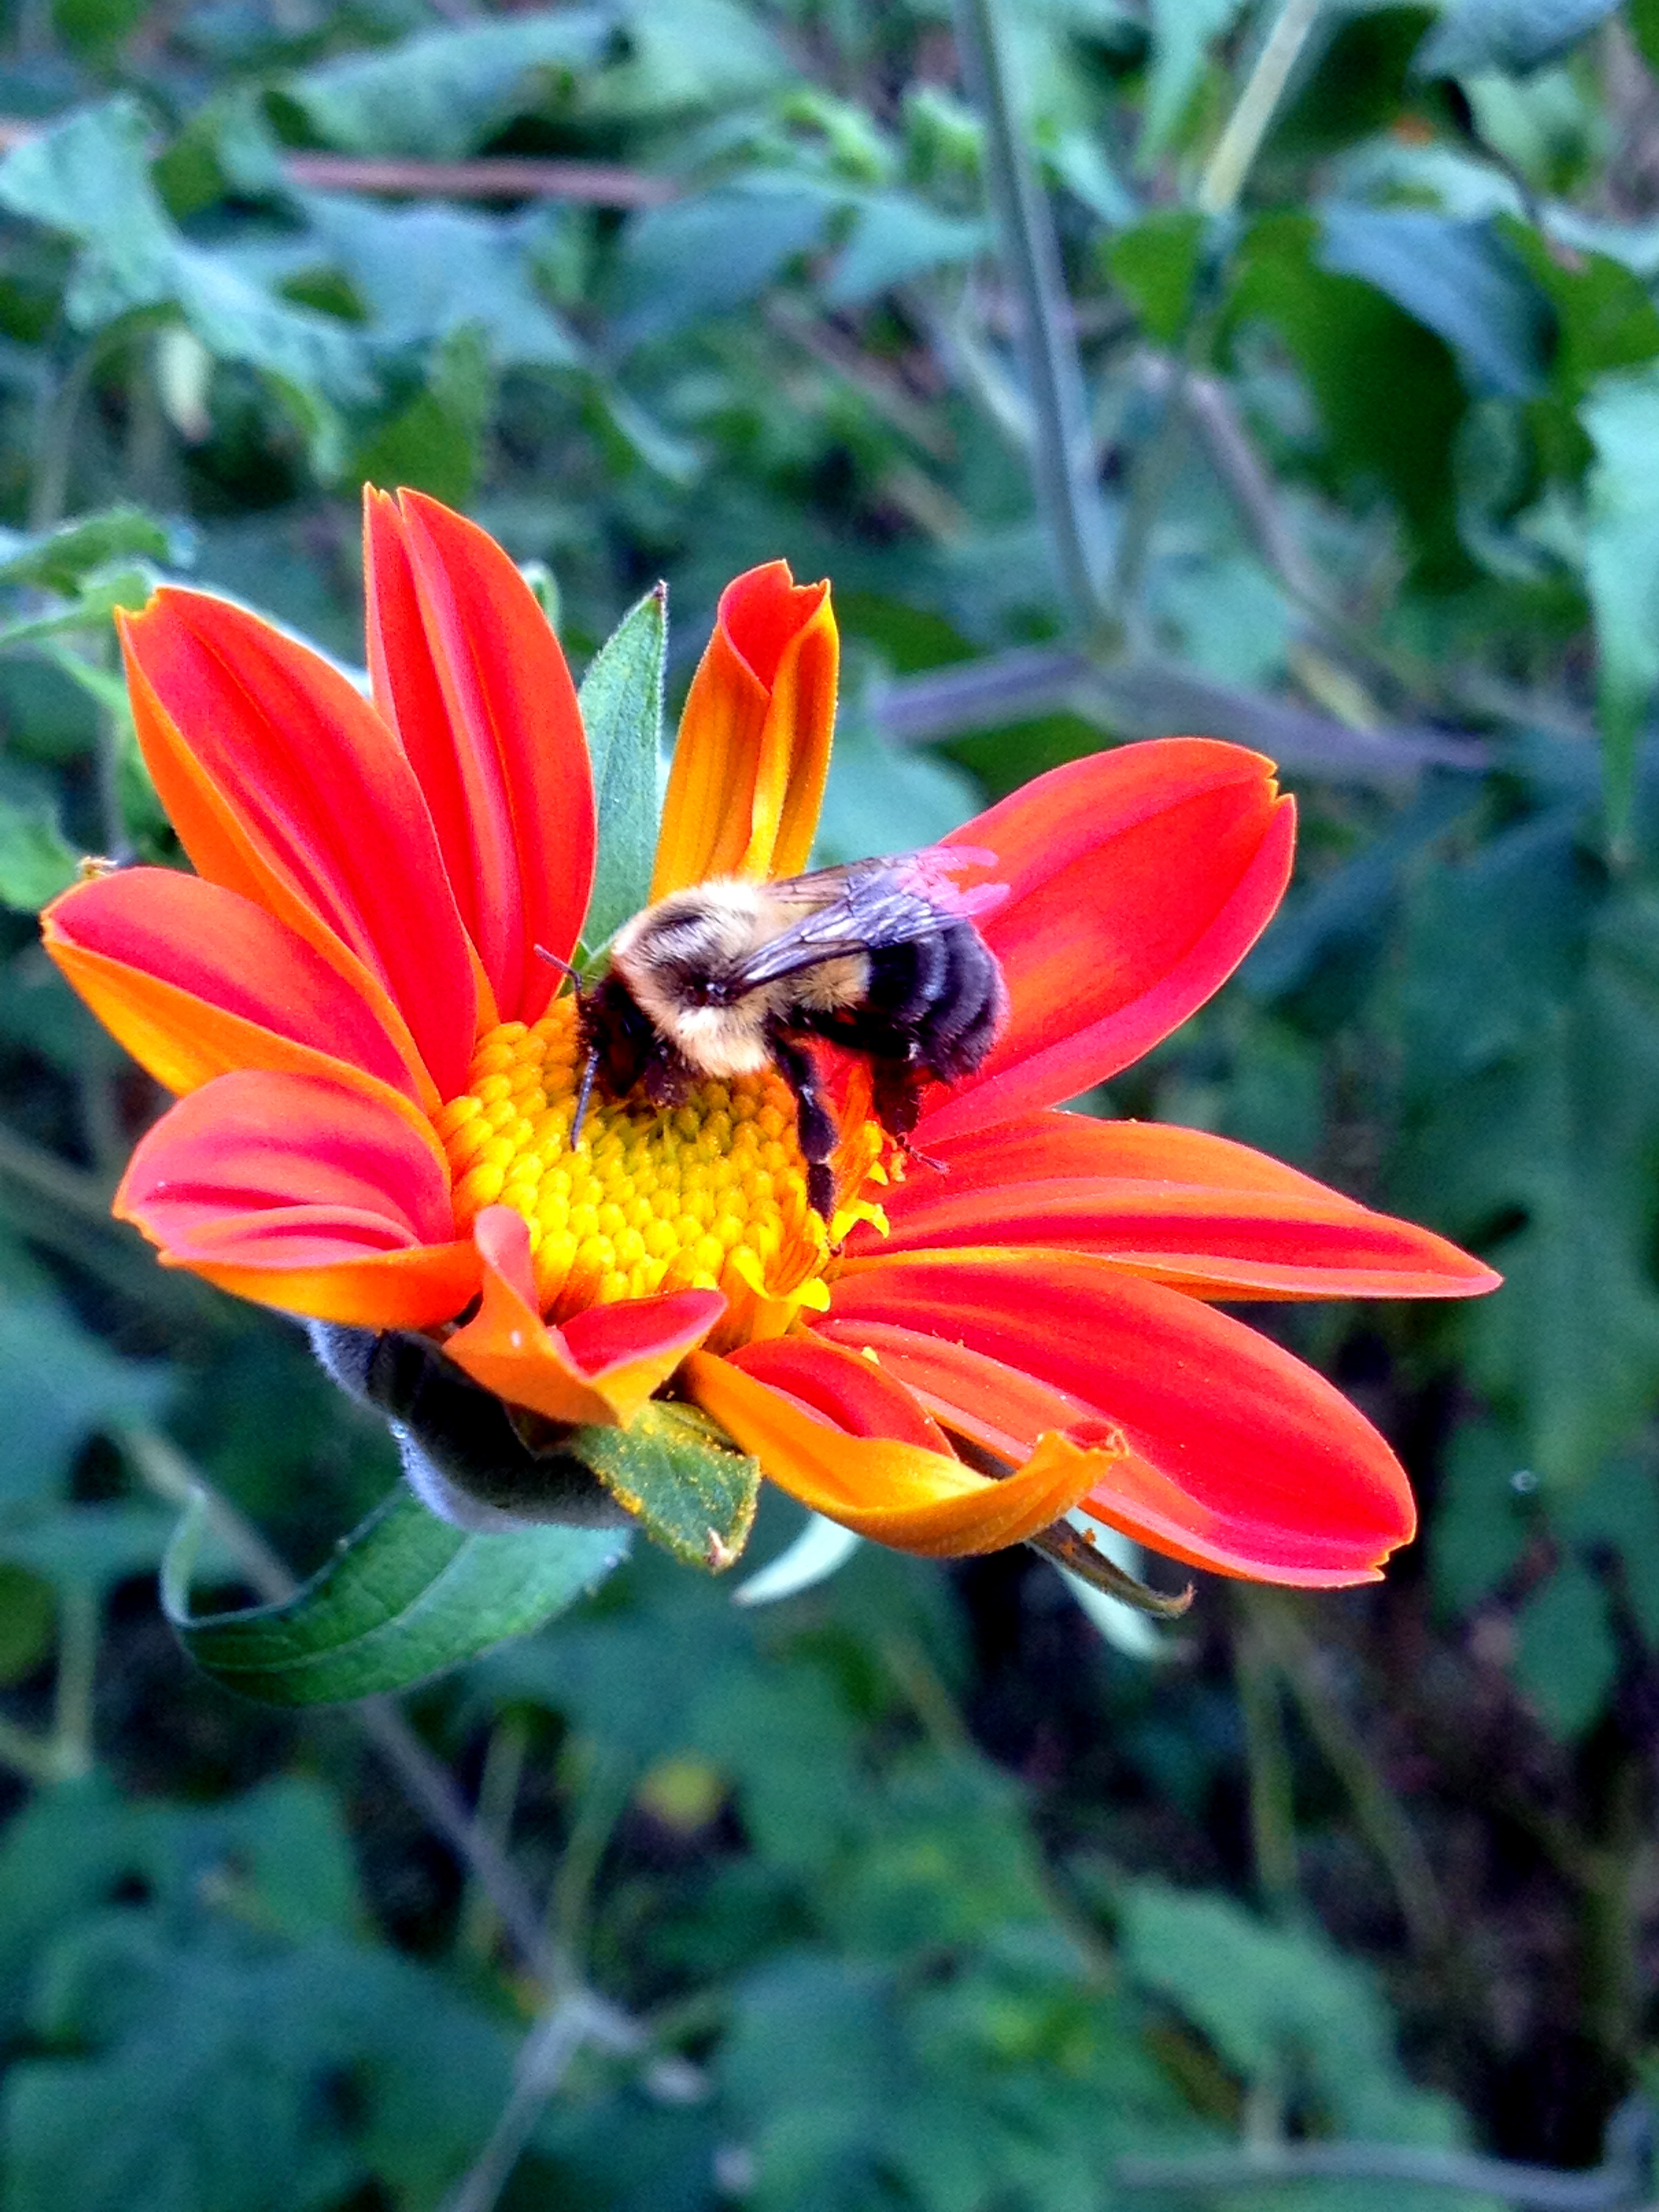 Bees love biodynamic flowers.